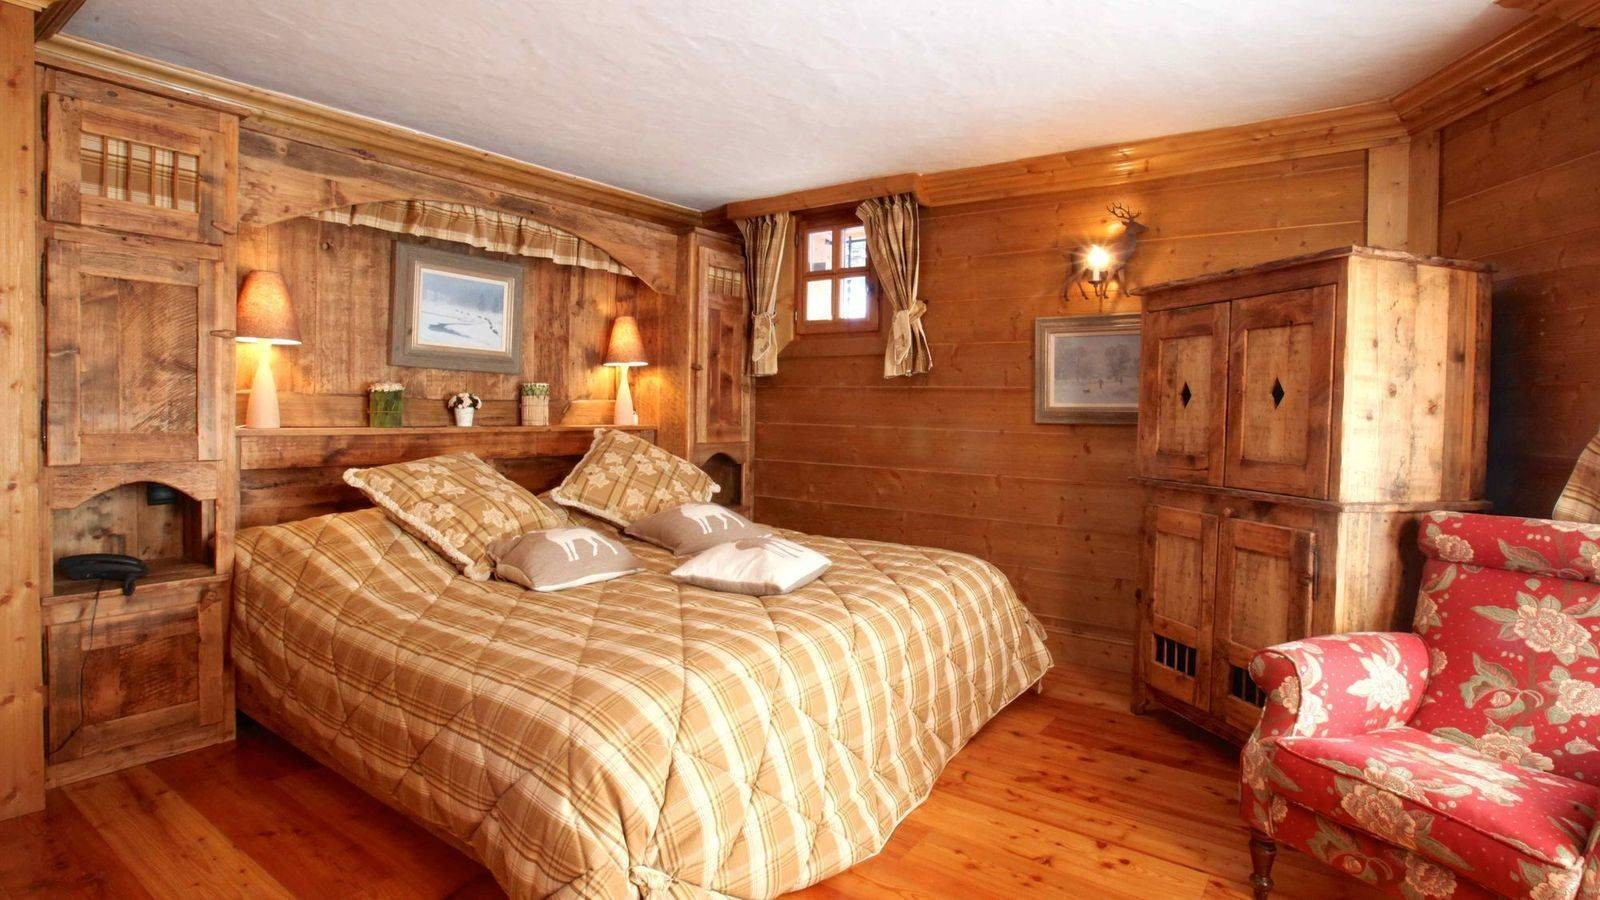 Courchevel 1850 Location Chalet Luxe Tantalite  Chambre